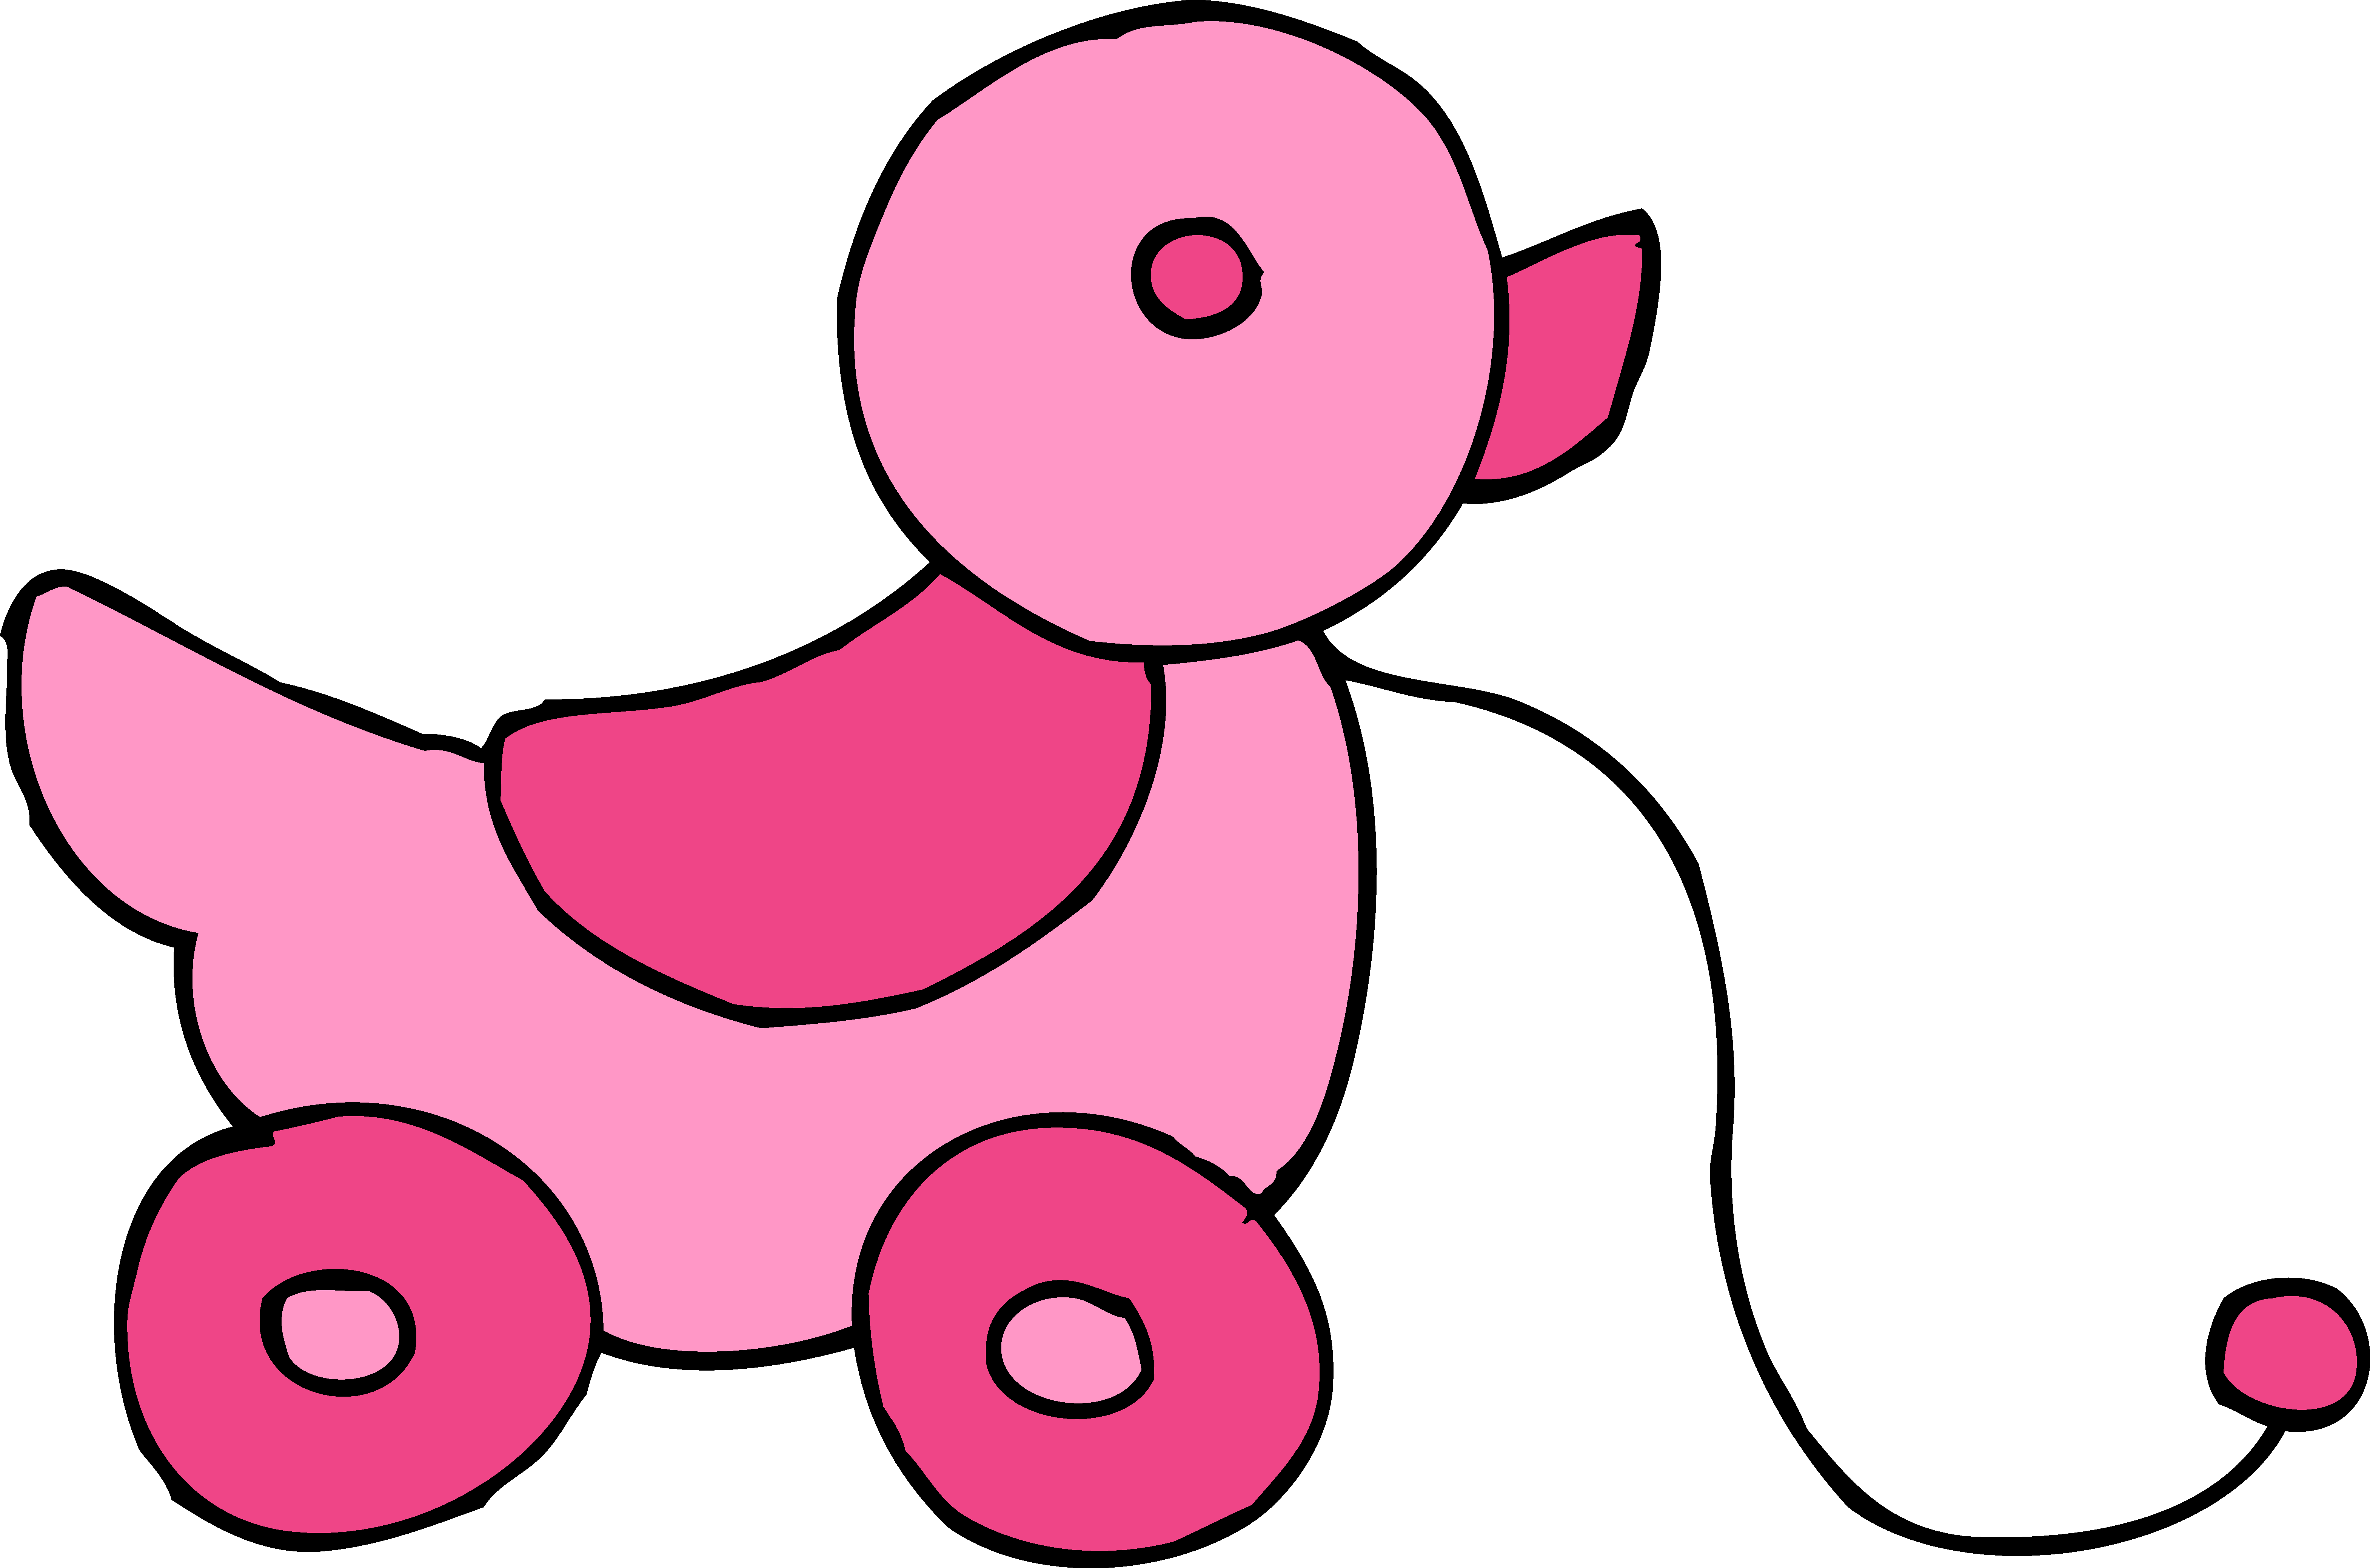 Free Baby Toys Clipart, Download Free Clip Art, Free Clip.